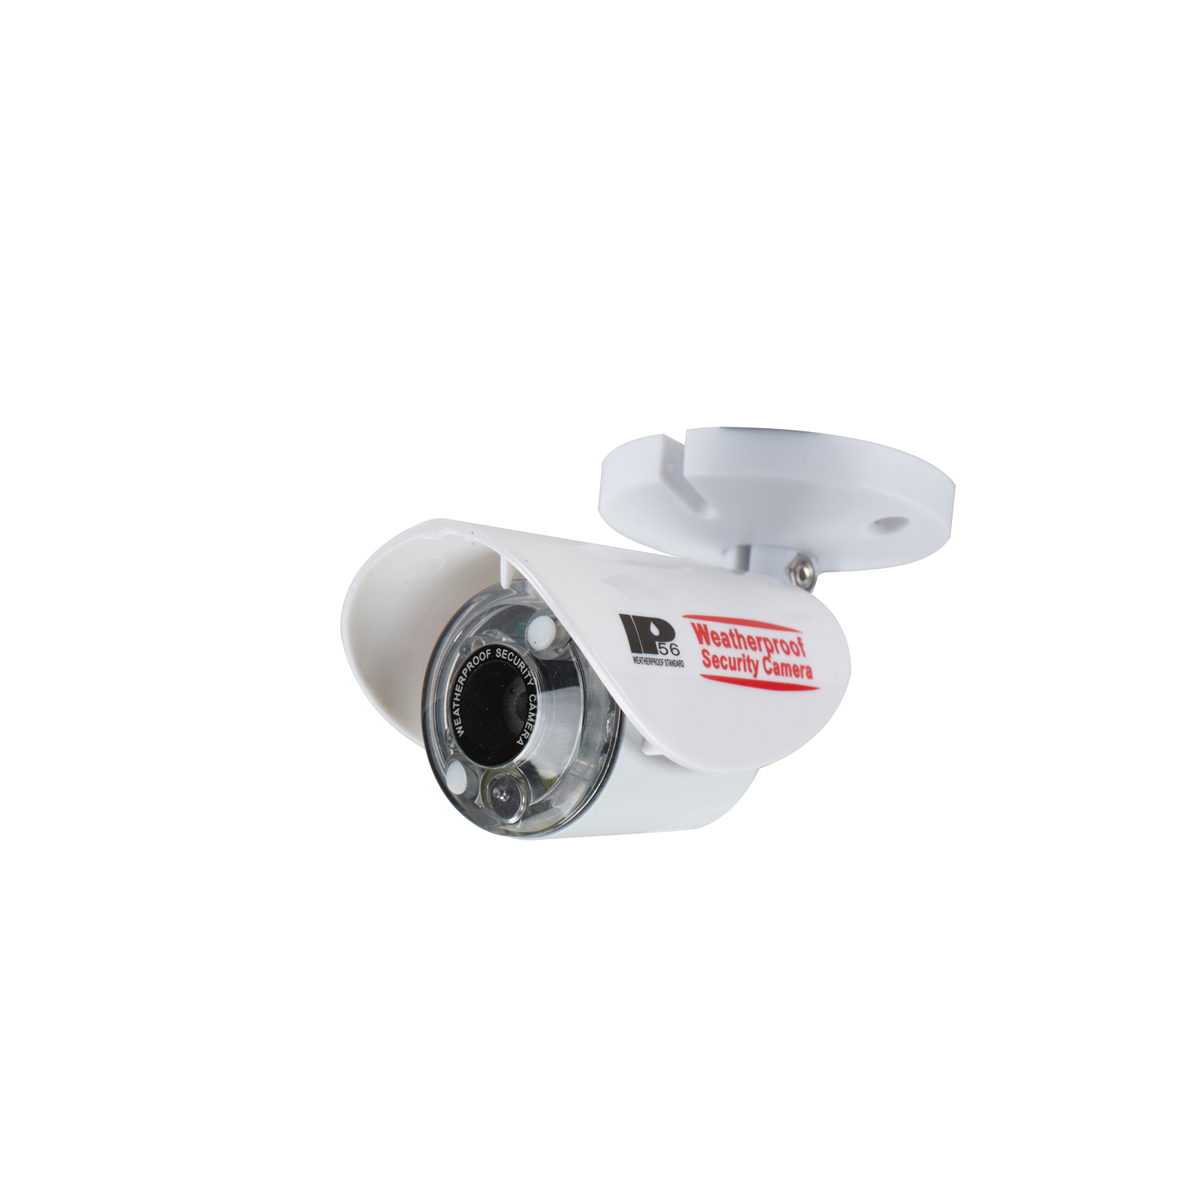 Weatherproof Security Camera With Night Vision - Harbor Freight Security Camera Wiring Diagram